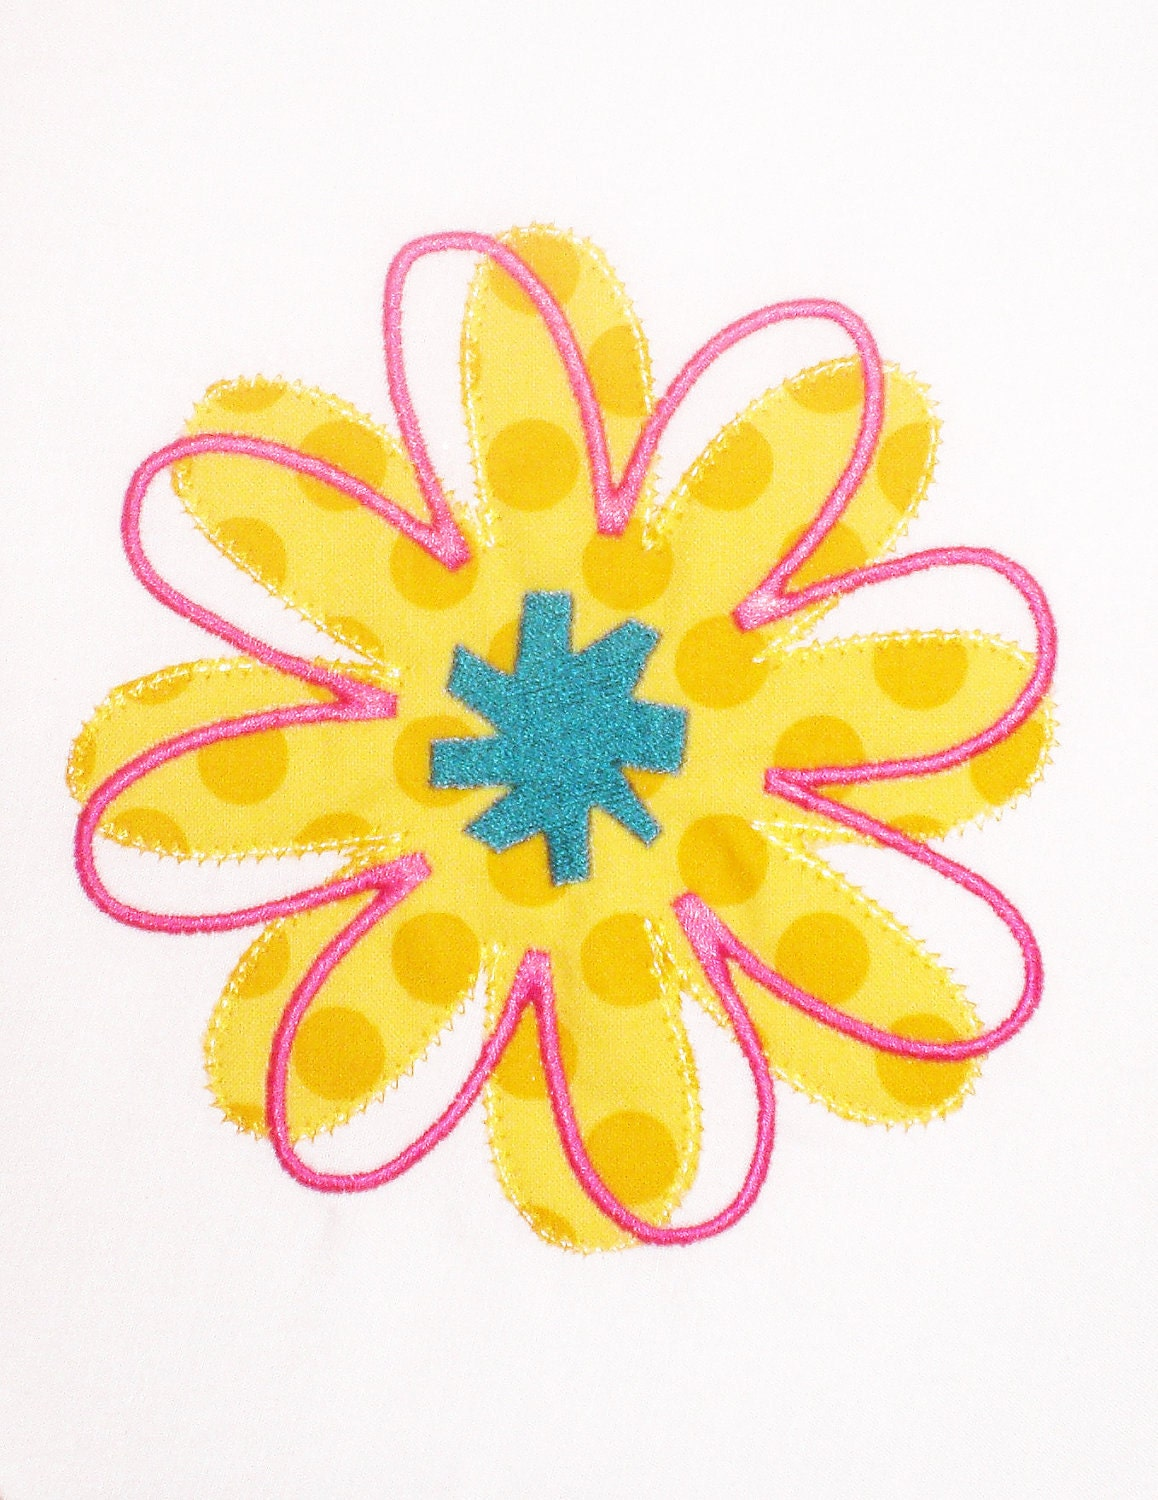 Twisted flower embroidery design machine applique